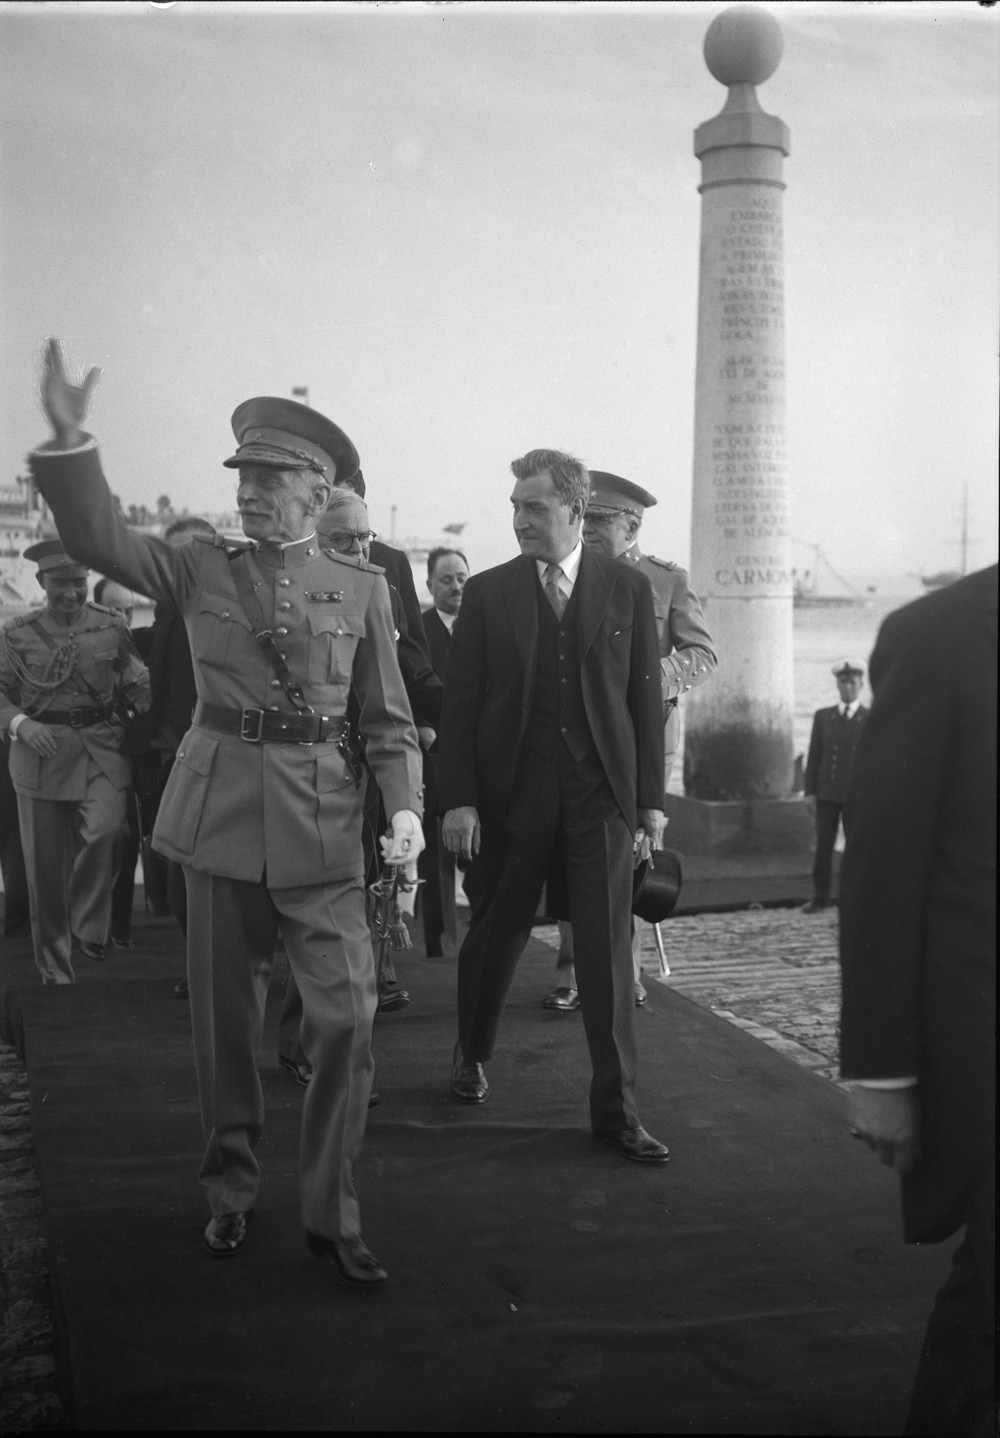 General António Óscar de Fragoso Carmona, pictured here with Salazar, was born in Lisbon in 1869, and was President of the Republic from 1926 to 1951. He died in Lisbon on April 18, 1951.  Photo: Horácio Novais, ca. 1940, Lisbon   Biblioteca de Arte da Fundação Calouste Gulbenkian  [CFT164_01112]